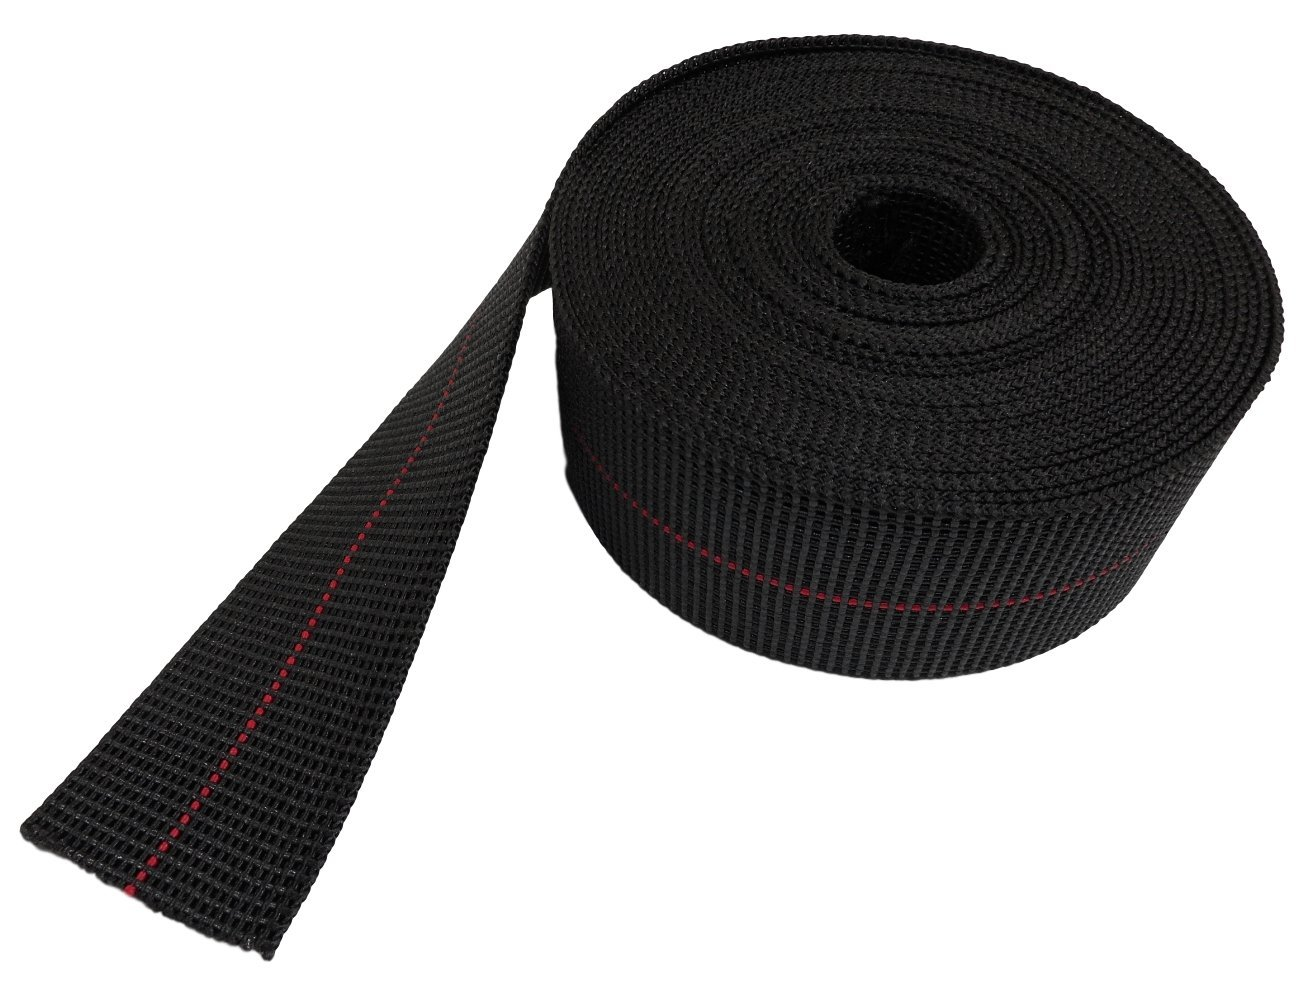 True Choice DIY Chair Webbing Elastic Latex 3 inch wide for repair or replacement (20 ft)